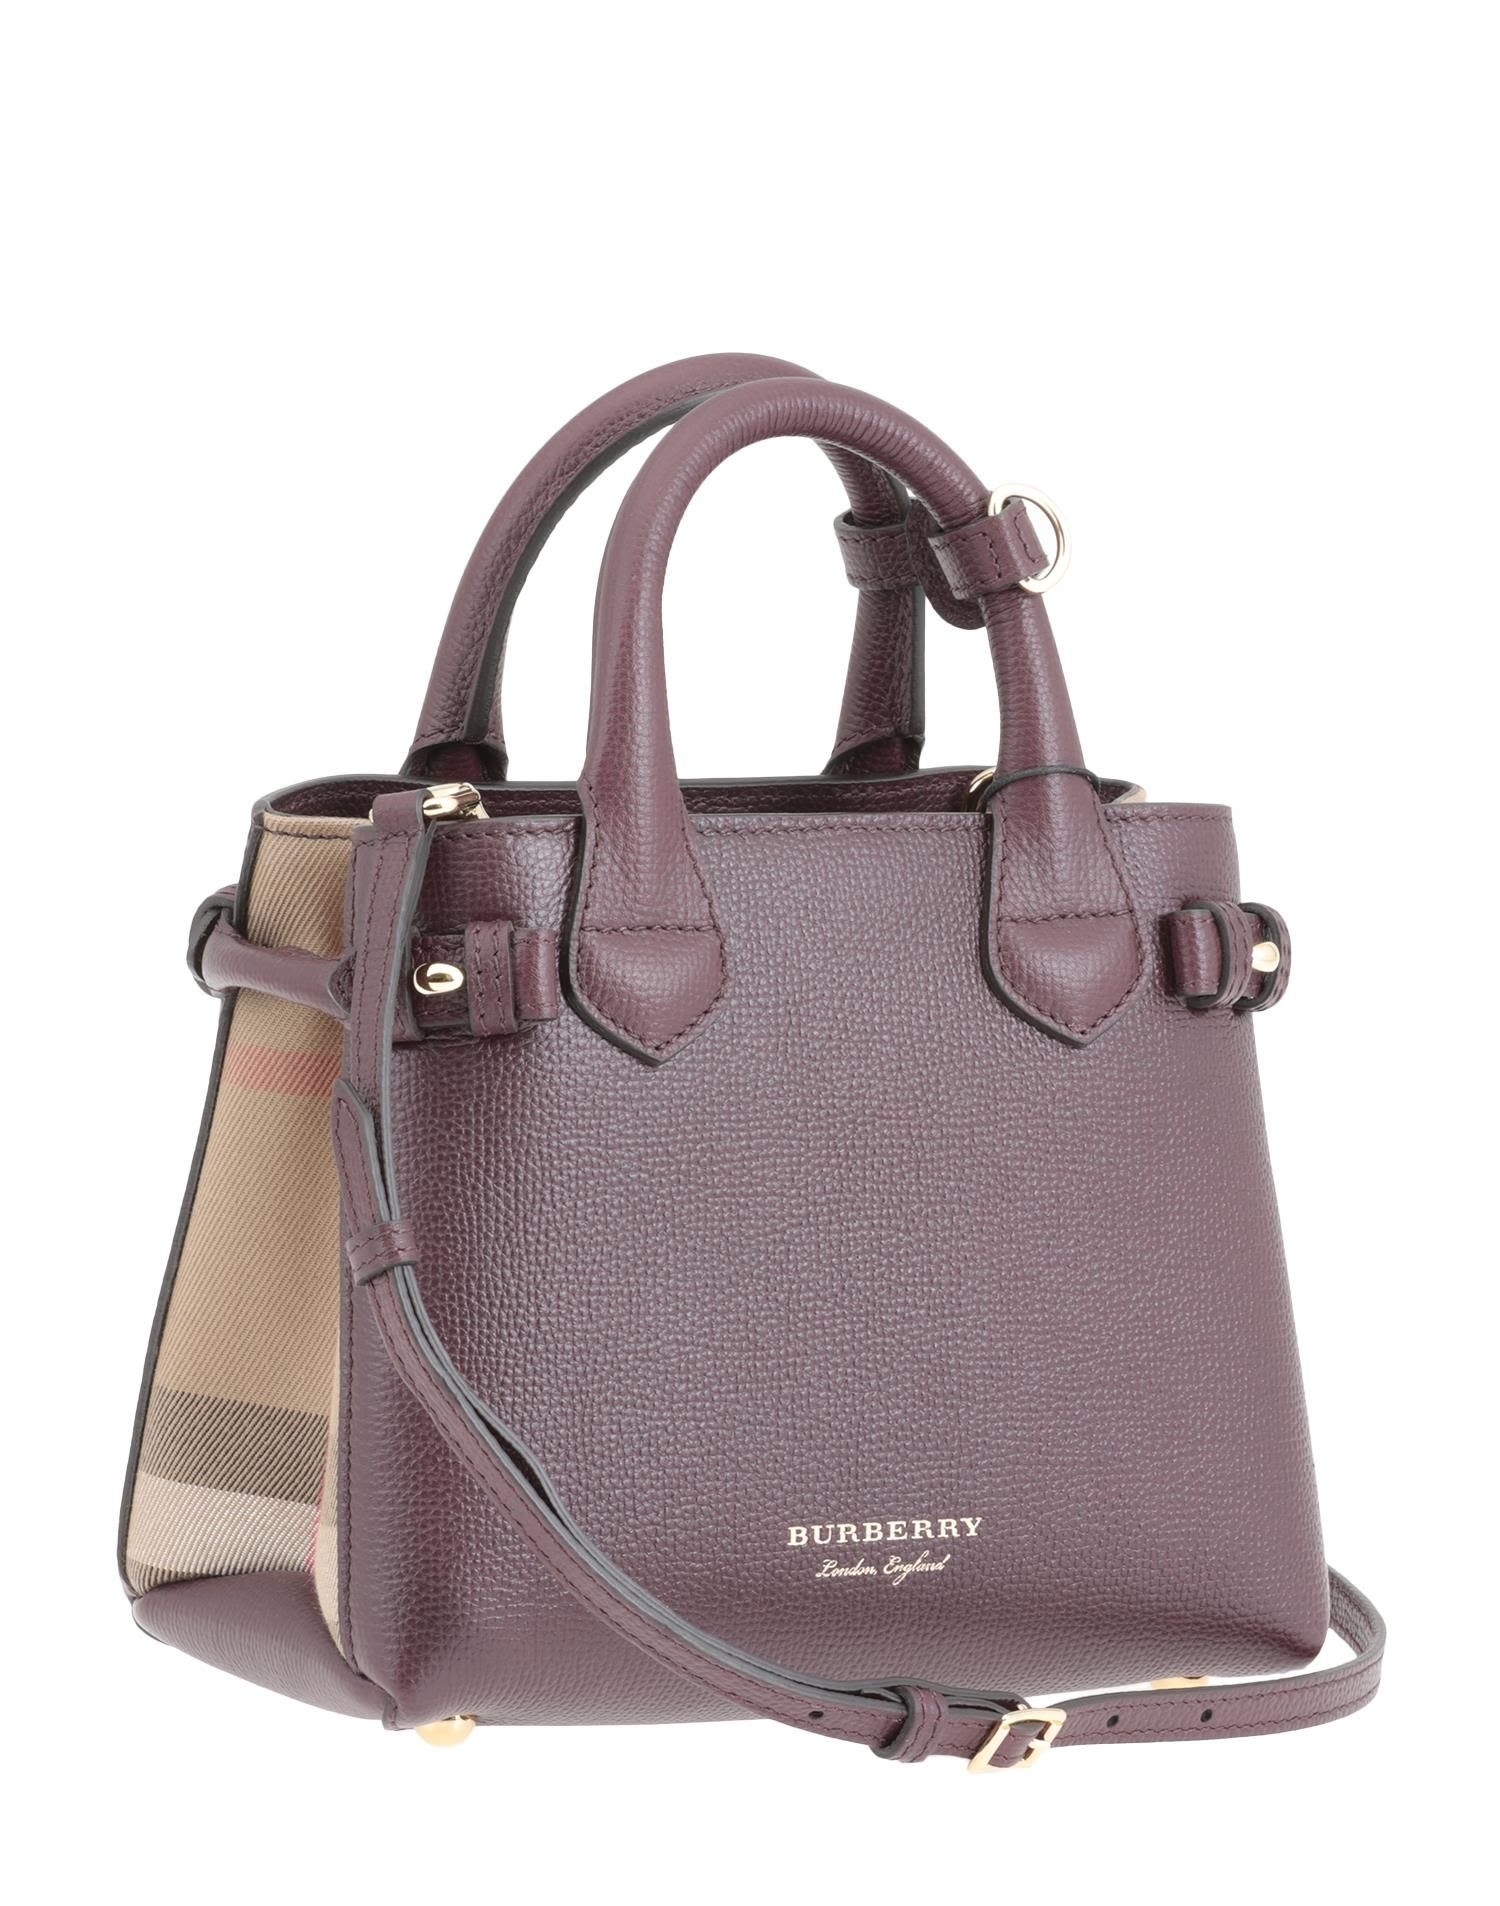 10f70140ec BURBERRY BANNER BABY BAG. #burberry #bags #baby bags #leather #lining  #cotton #